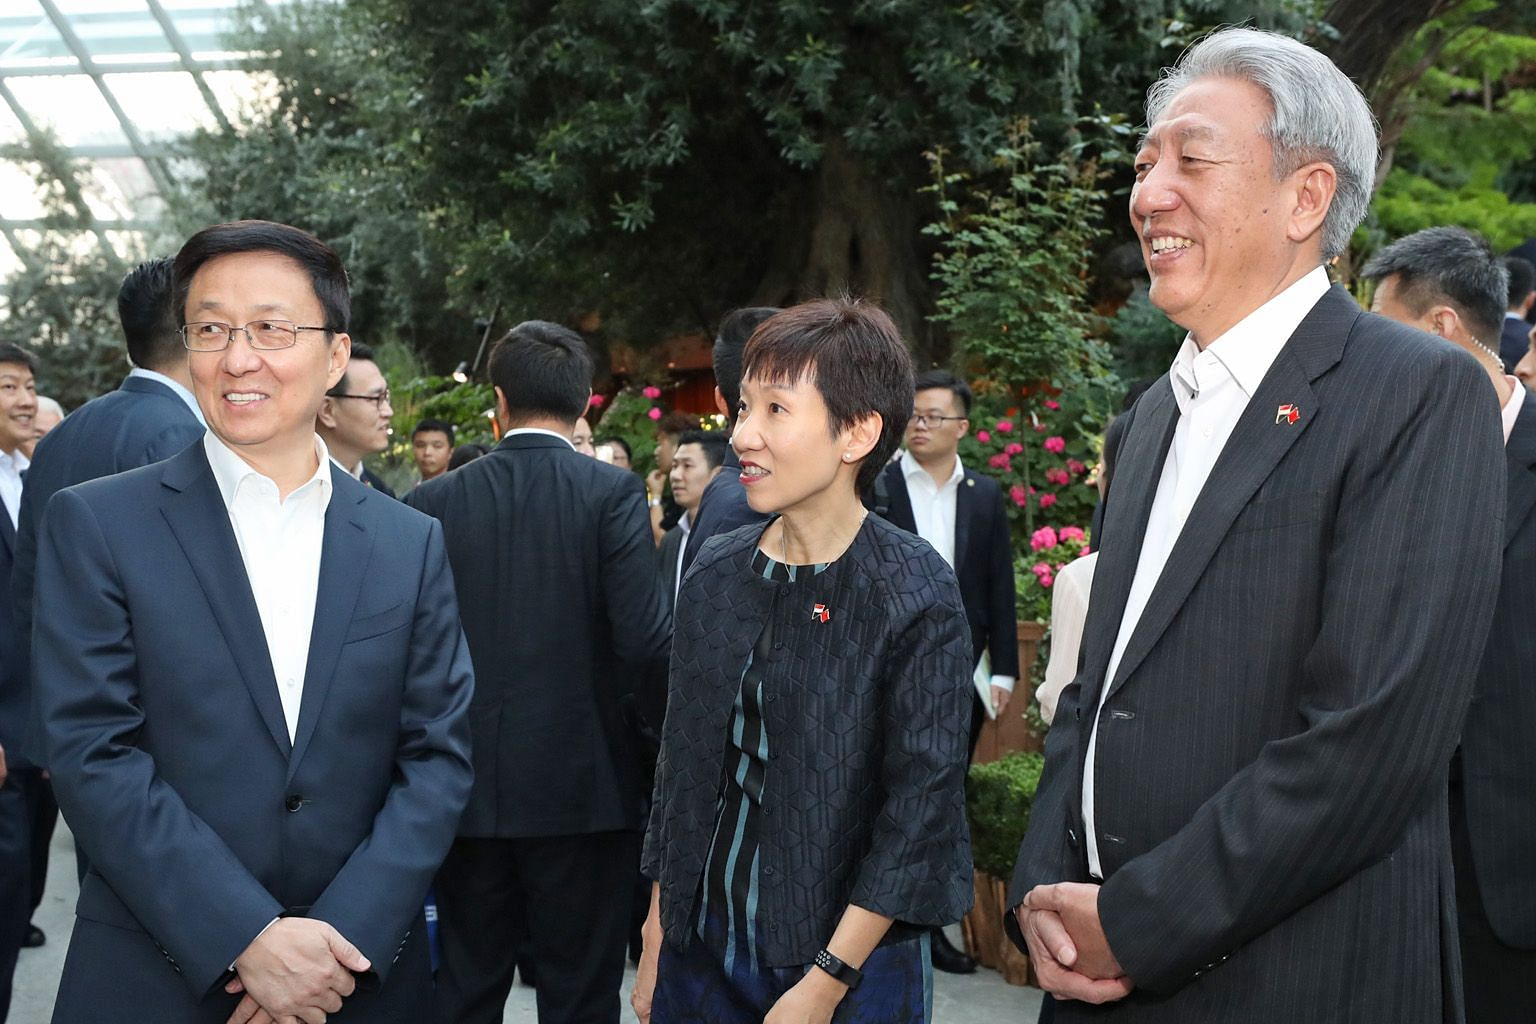 (From left) Chinese Vice-Premier Han Zheng, Minister for Culture, Community and Youth Grace Fu and Deputy Prime Minister Teo Chee Hean at the Gardens by the Bay yesterday, where Mr Han was hosted to dinner by DPM Teo.